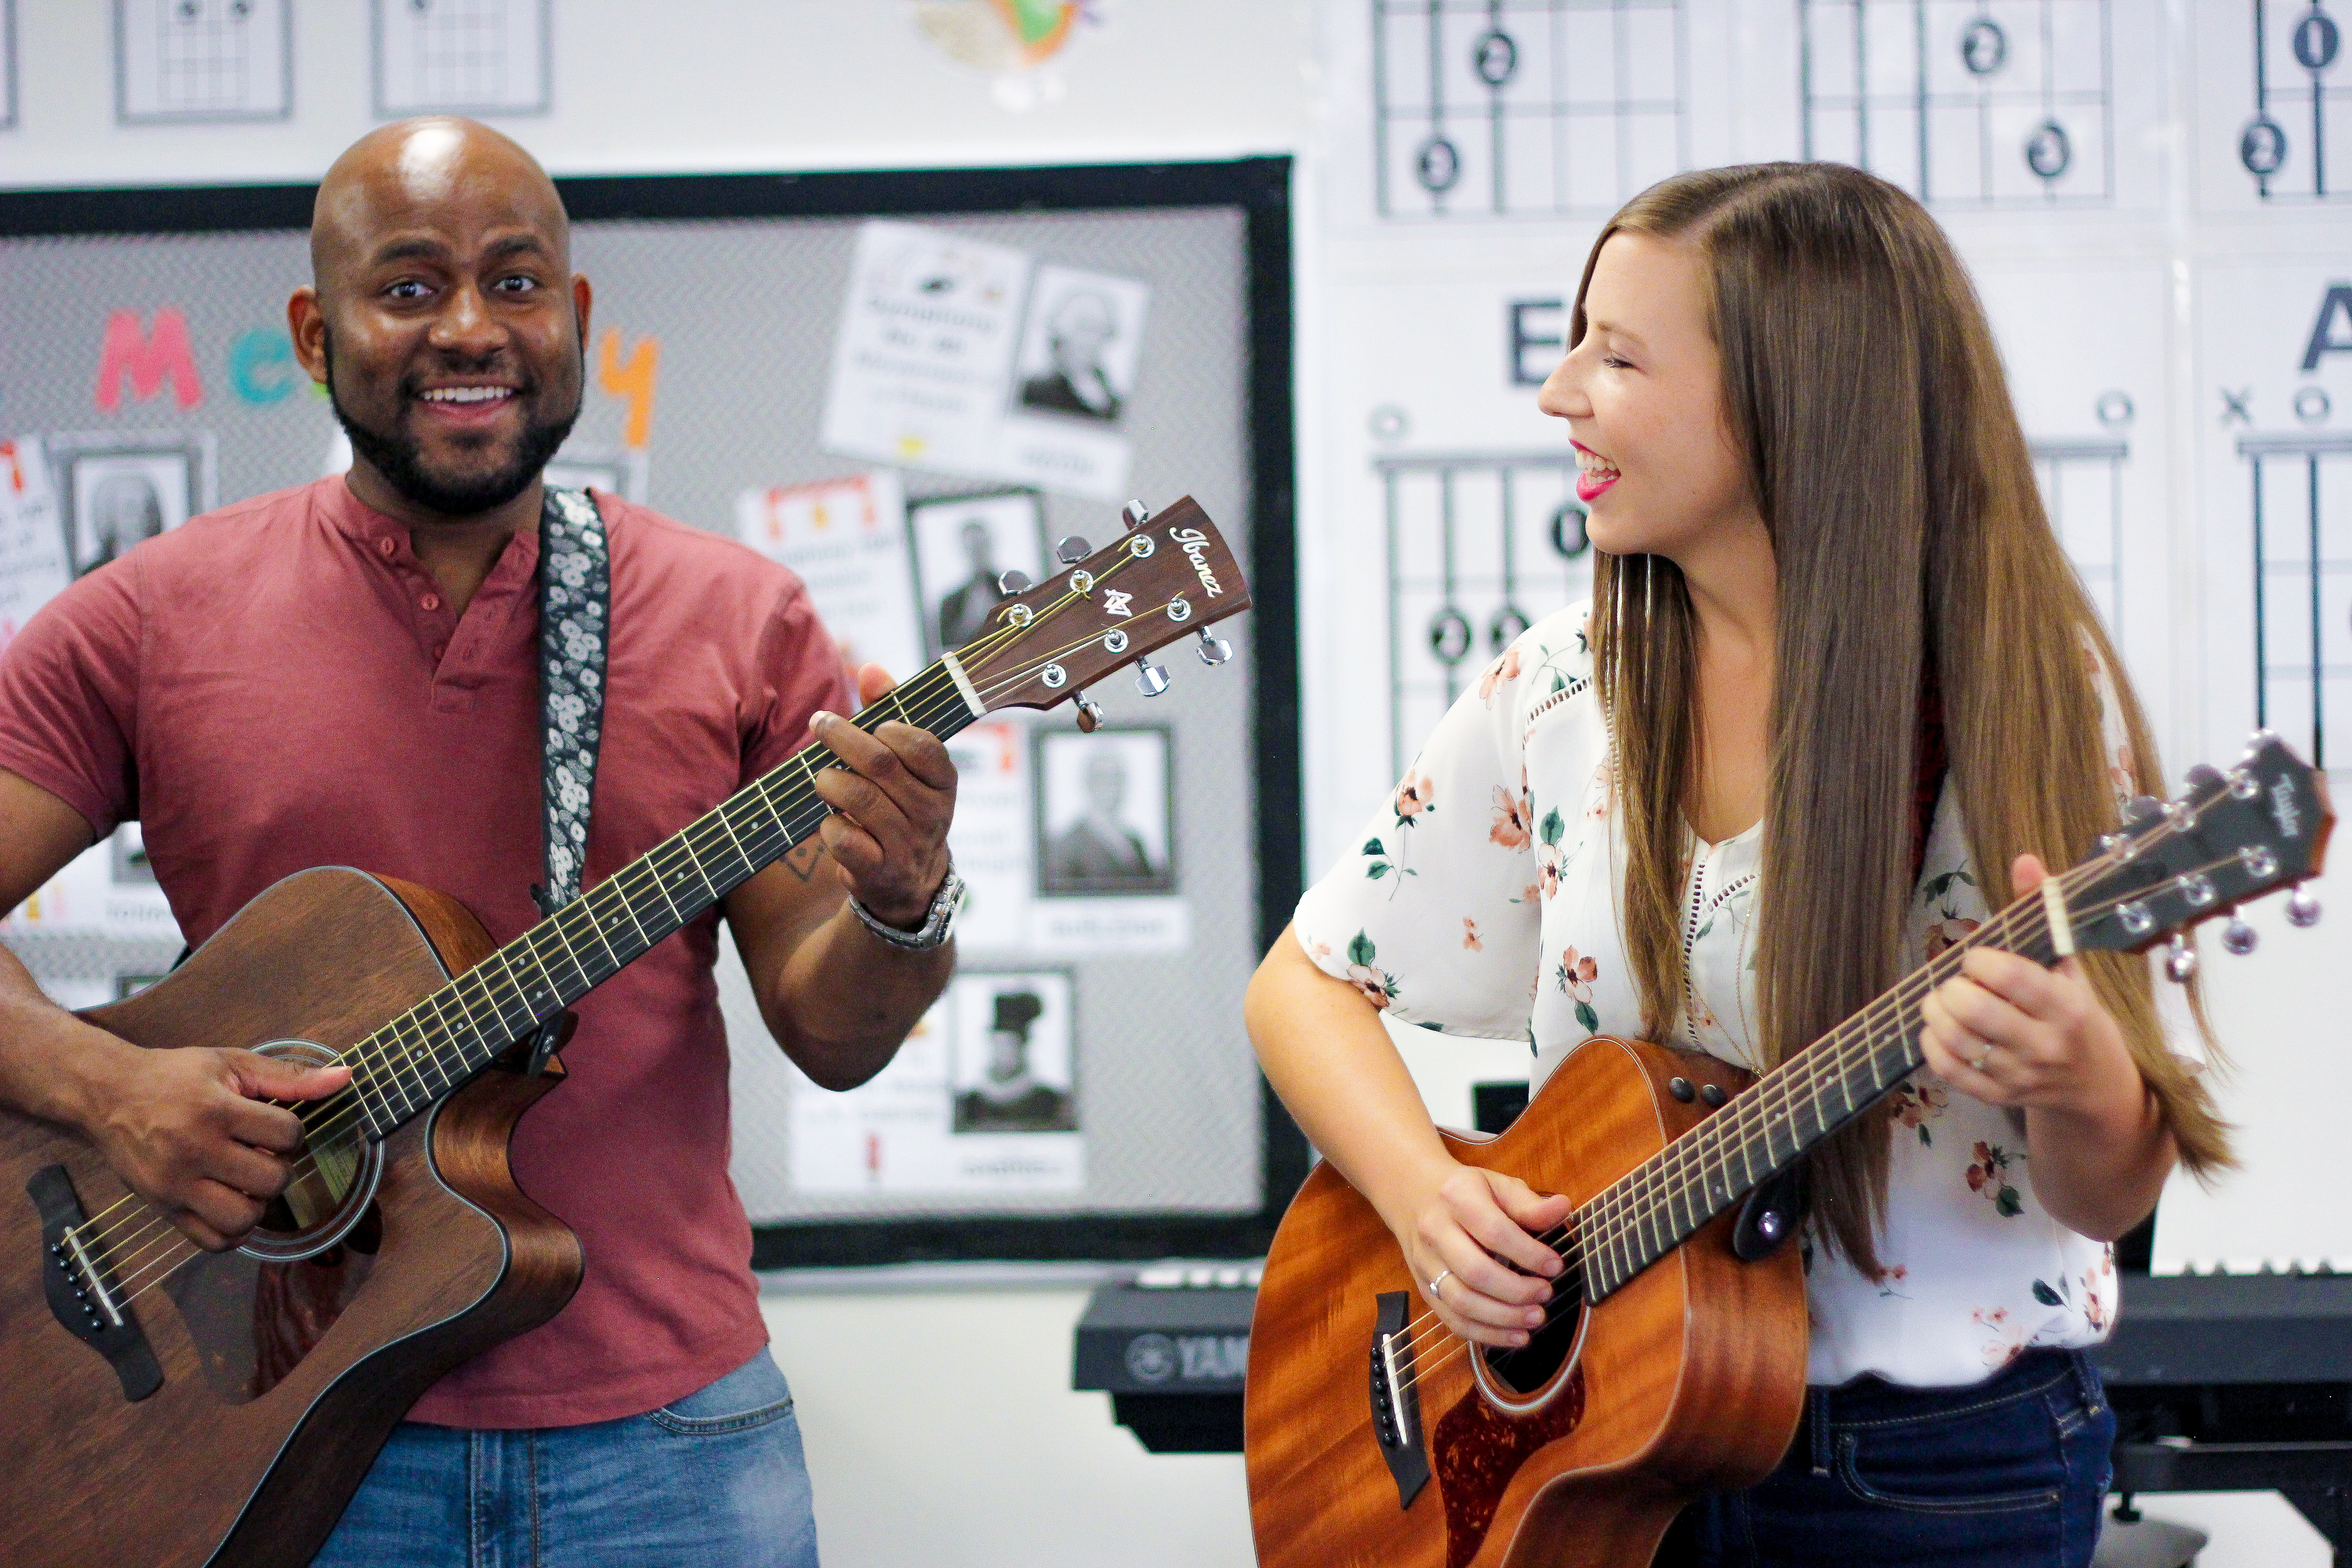 A male and female musician both playing guitars and both singing.